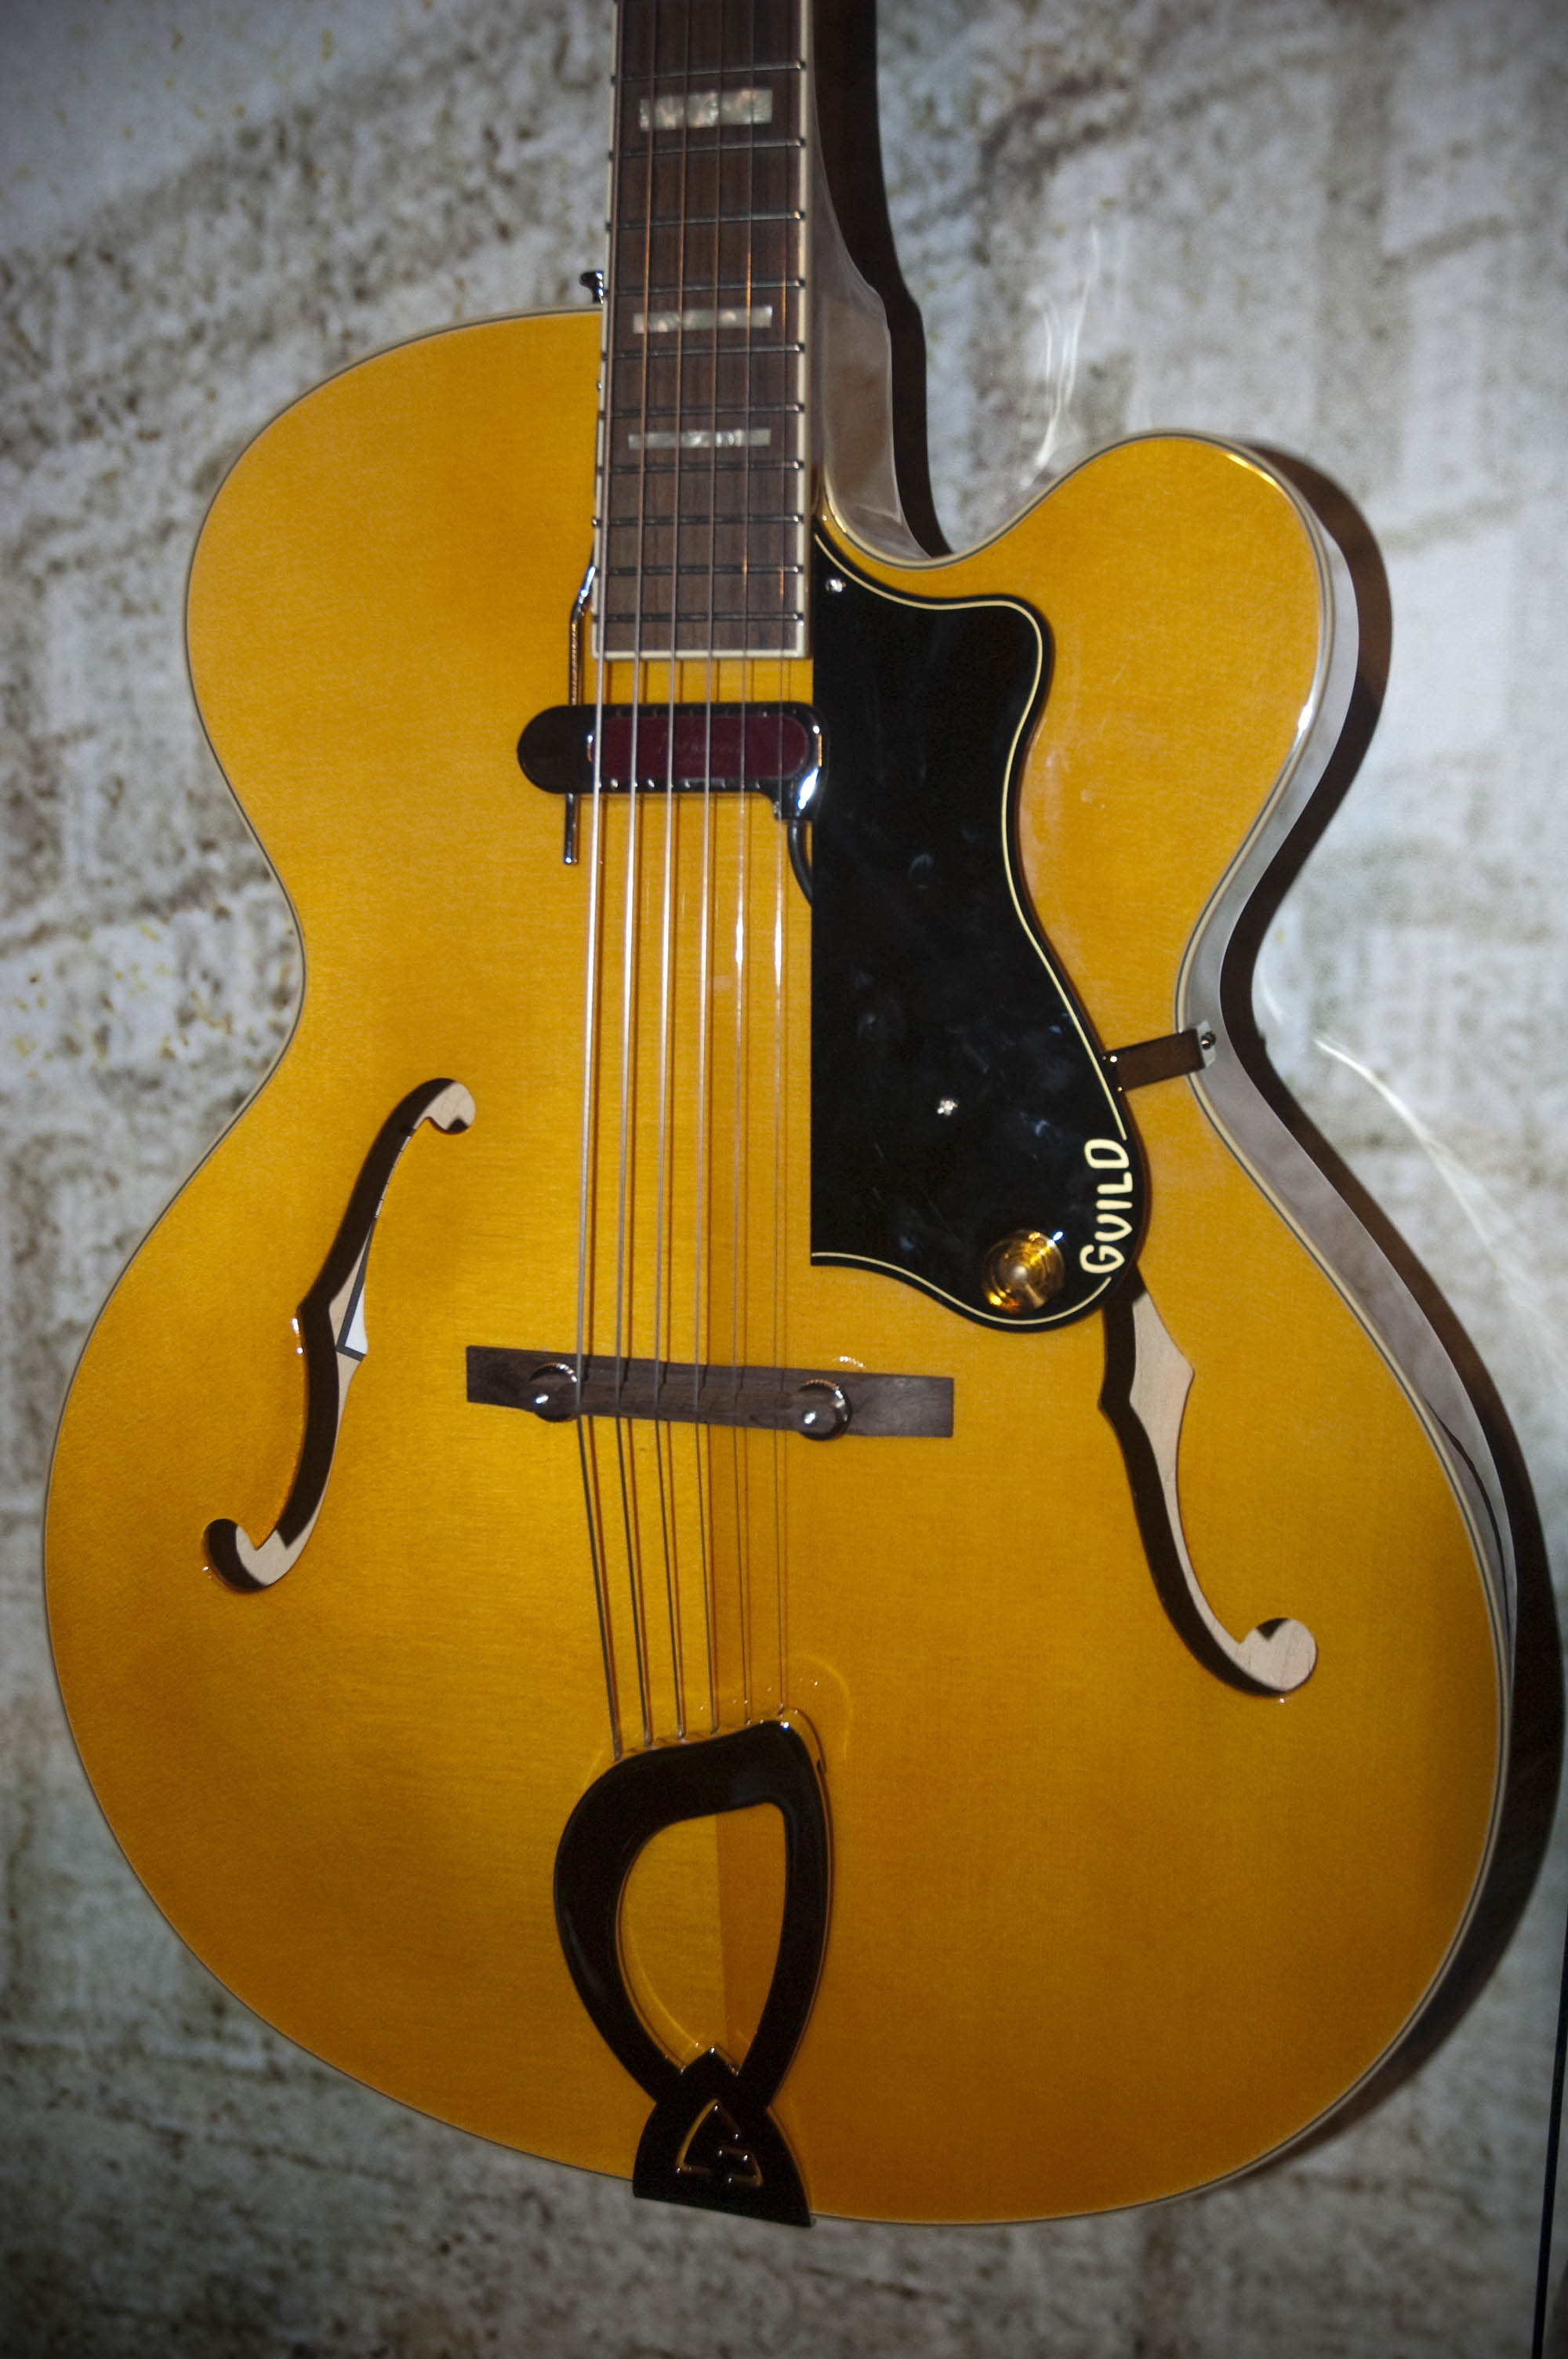 from Alec dating guild guitars